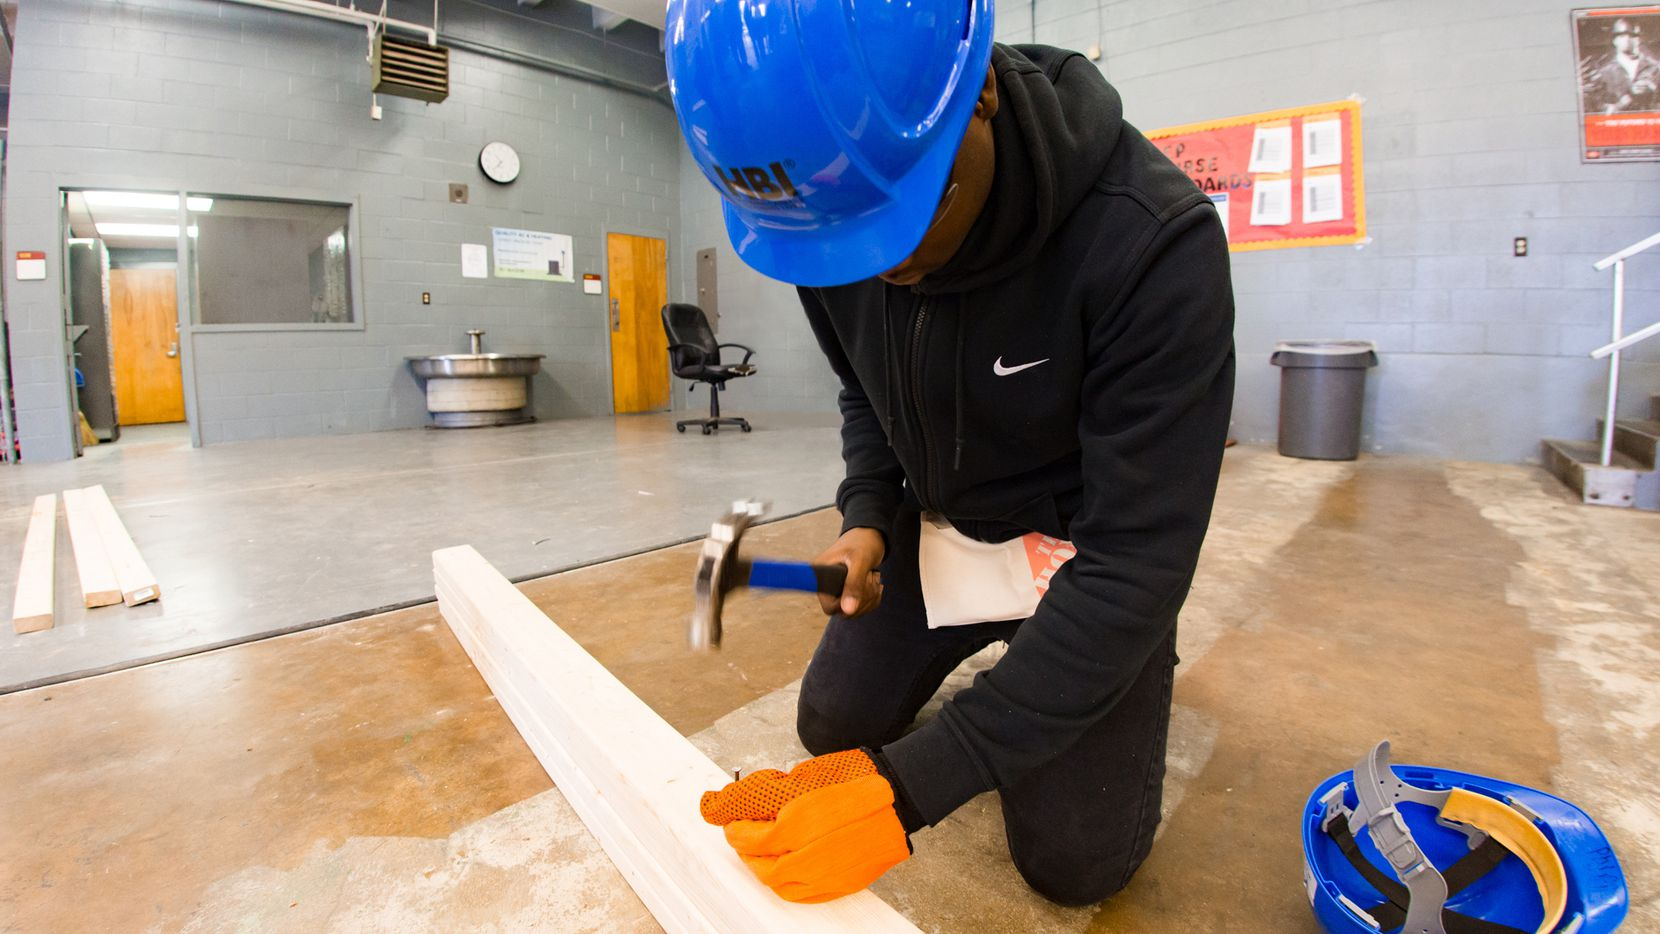 Home Depot one Monday starts an online training and recruiting program to help its professional customers find eligible workers.